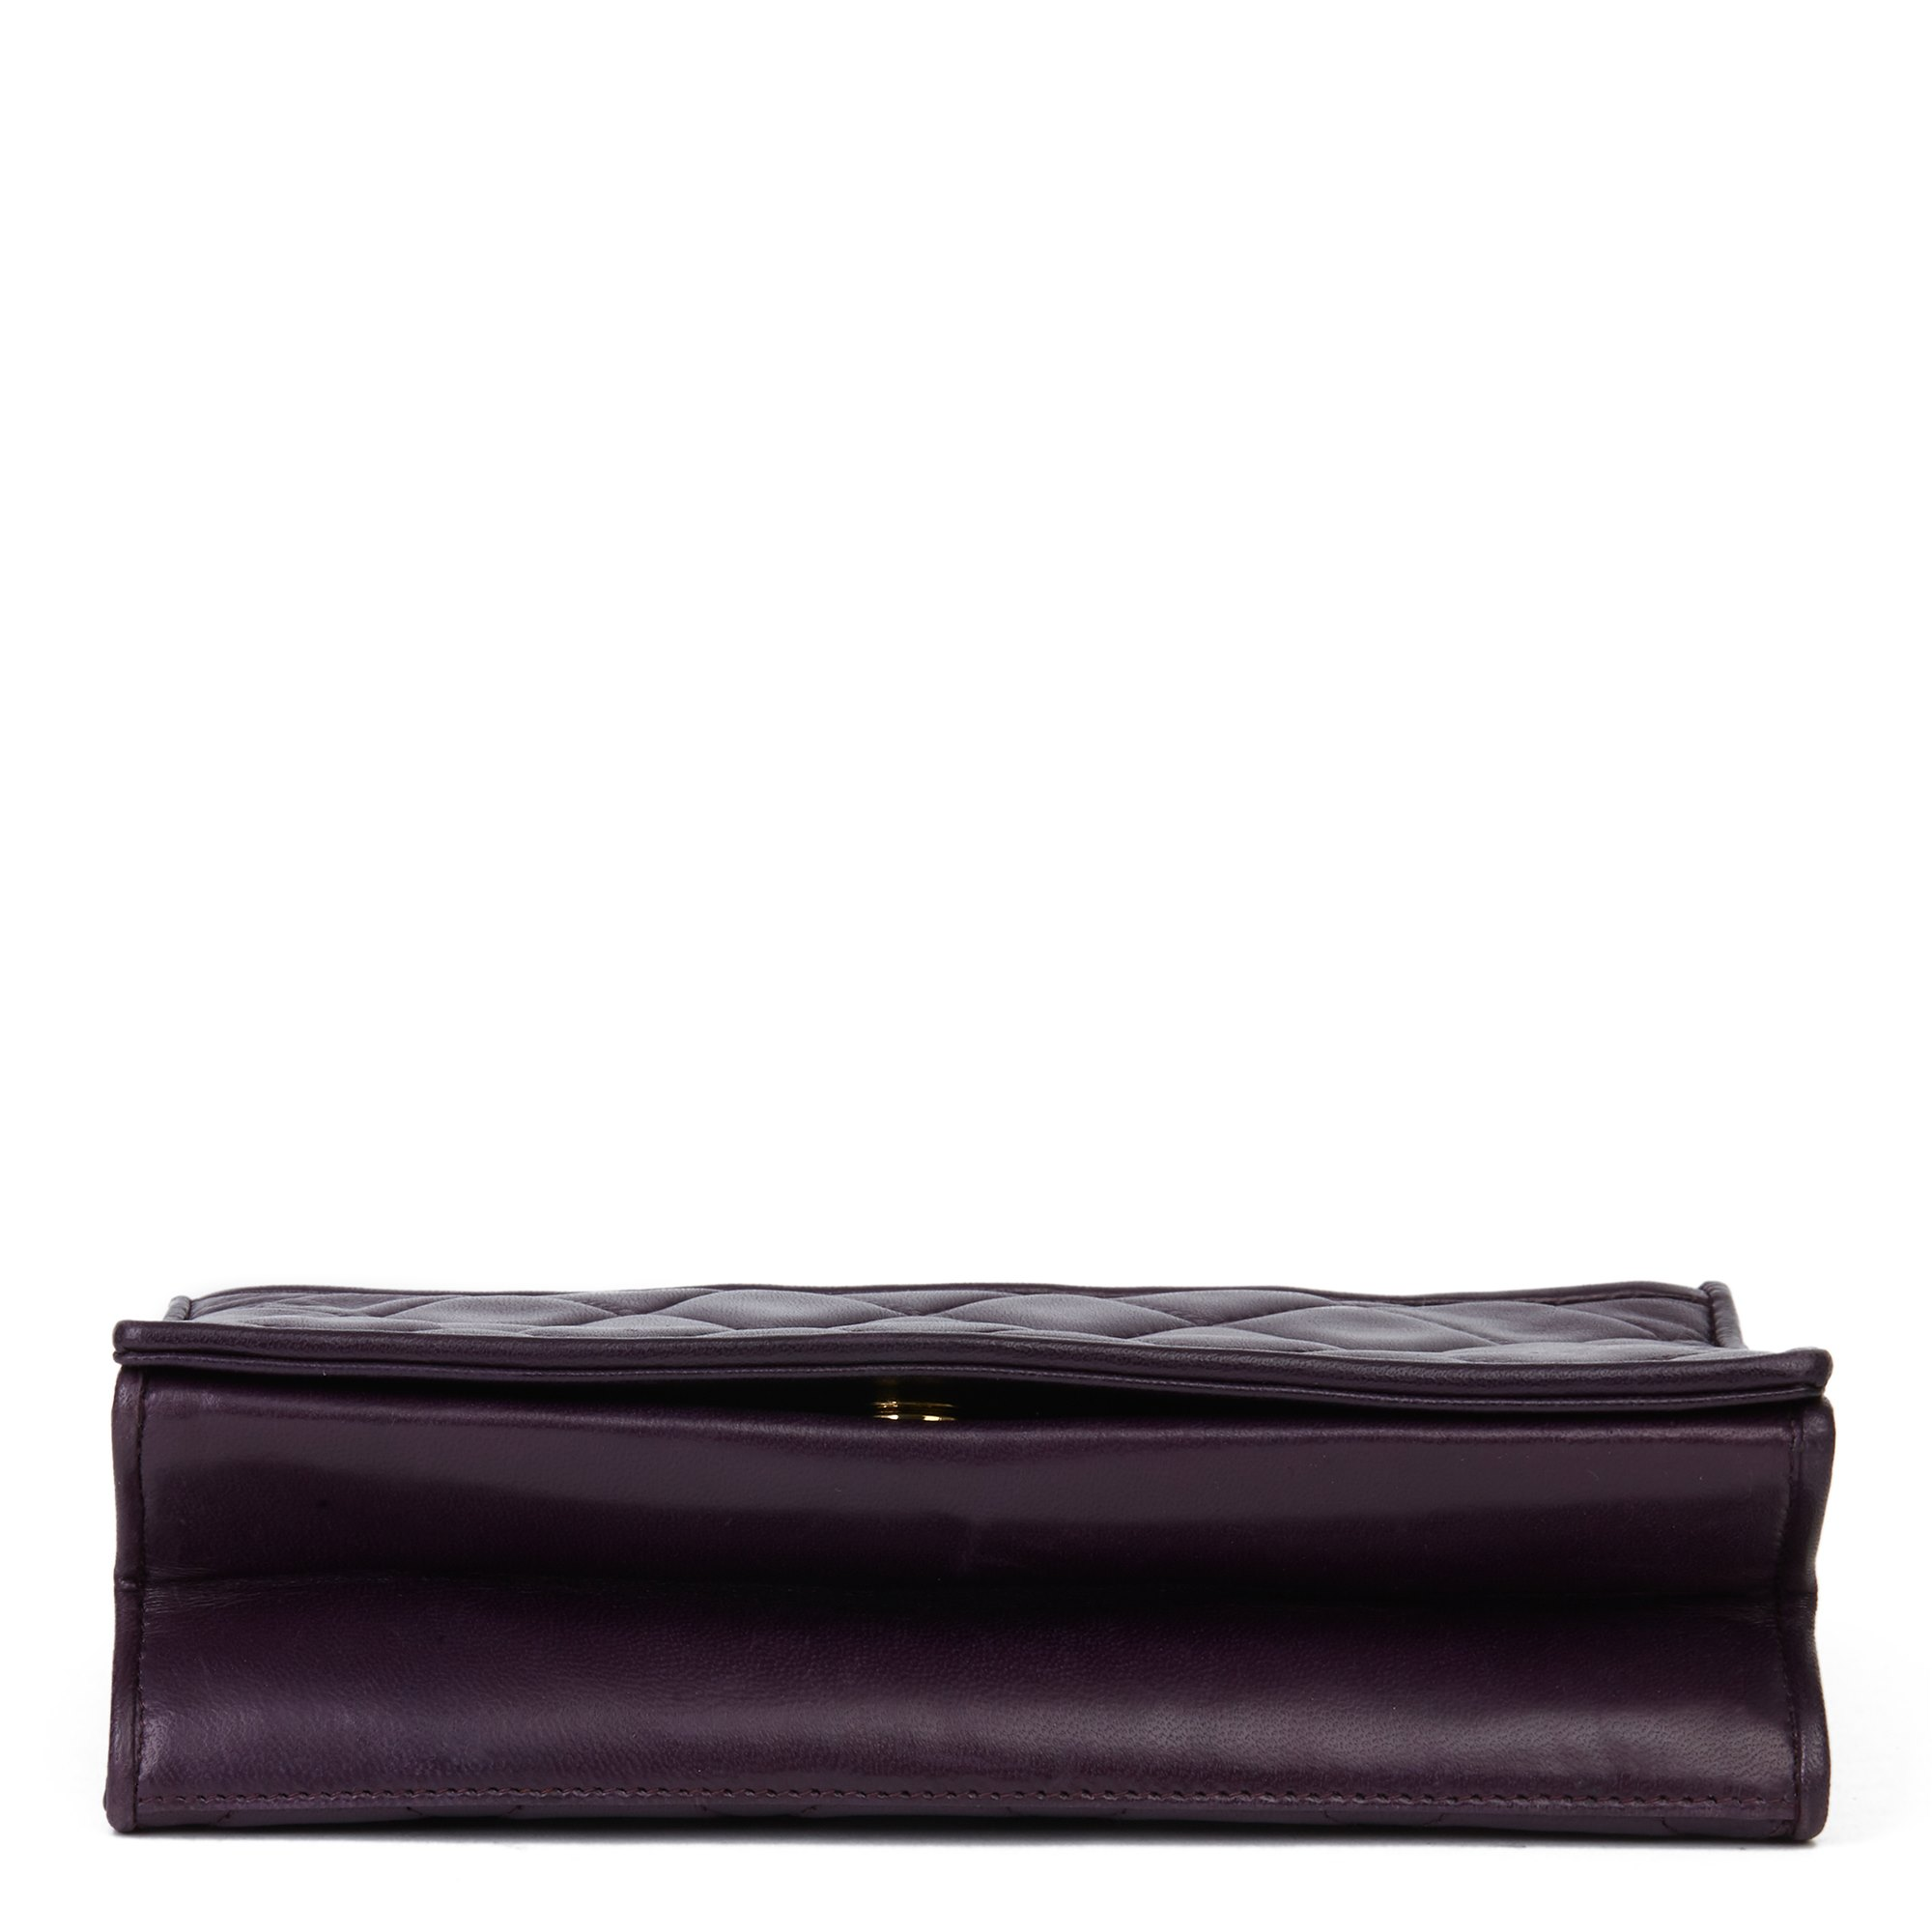 Chanel Purple Lambskin Vintage Timeless Single Flap Bag